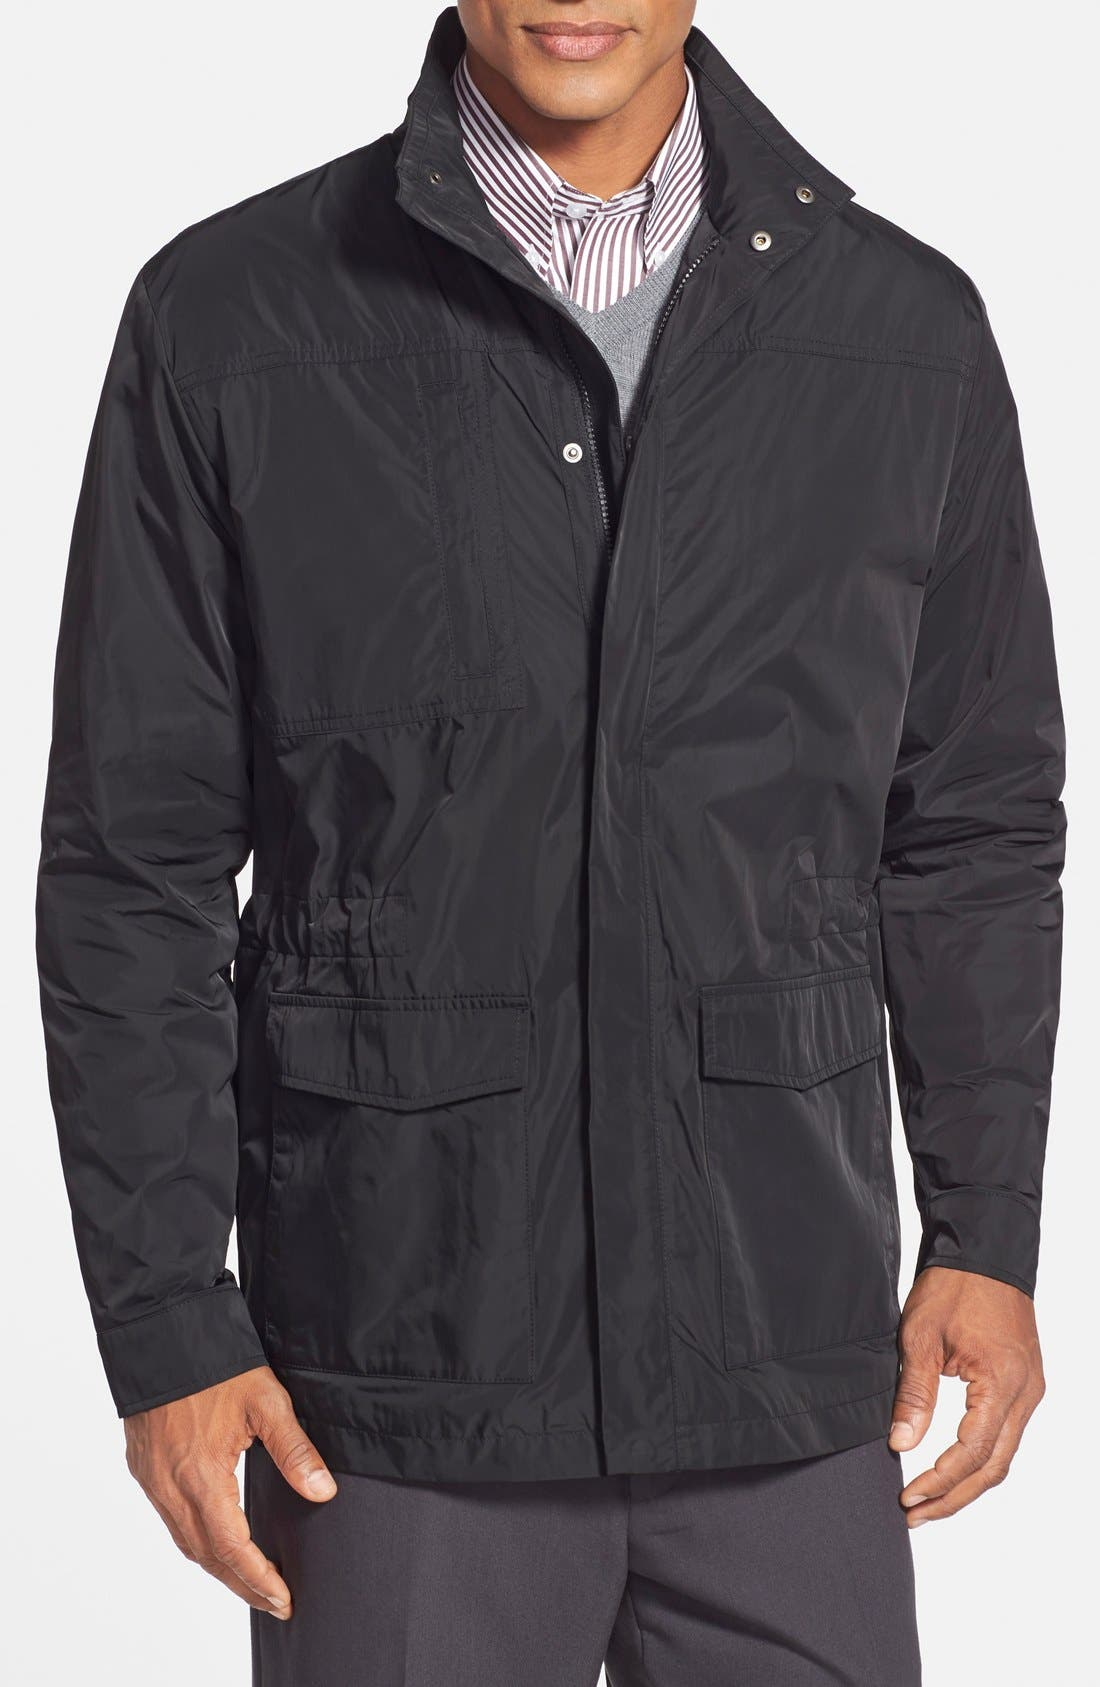 Main Image - Cutter & Buck Birch Bay Water Resistant Jacket (Online Only)